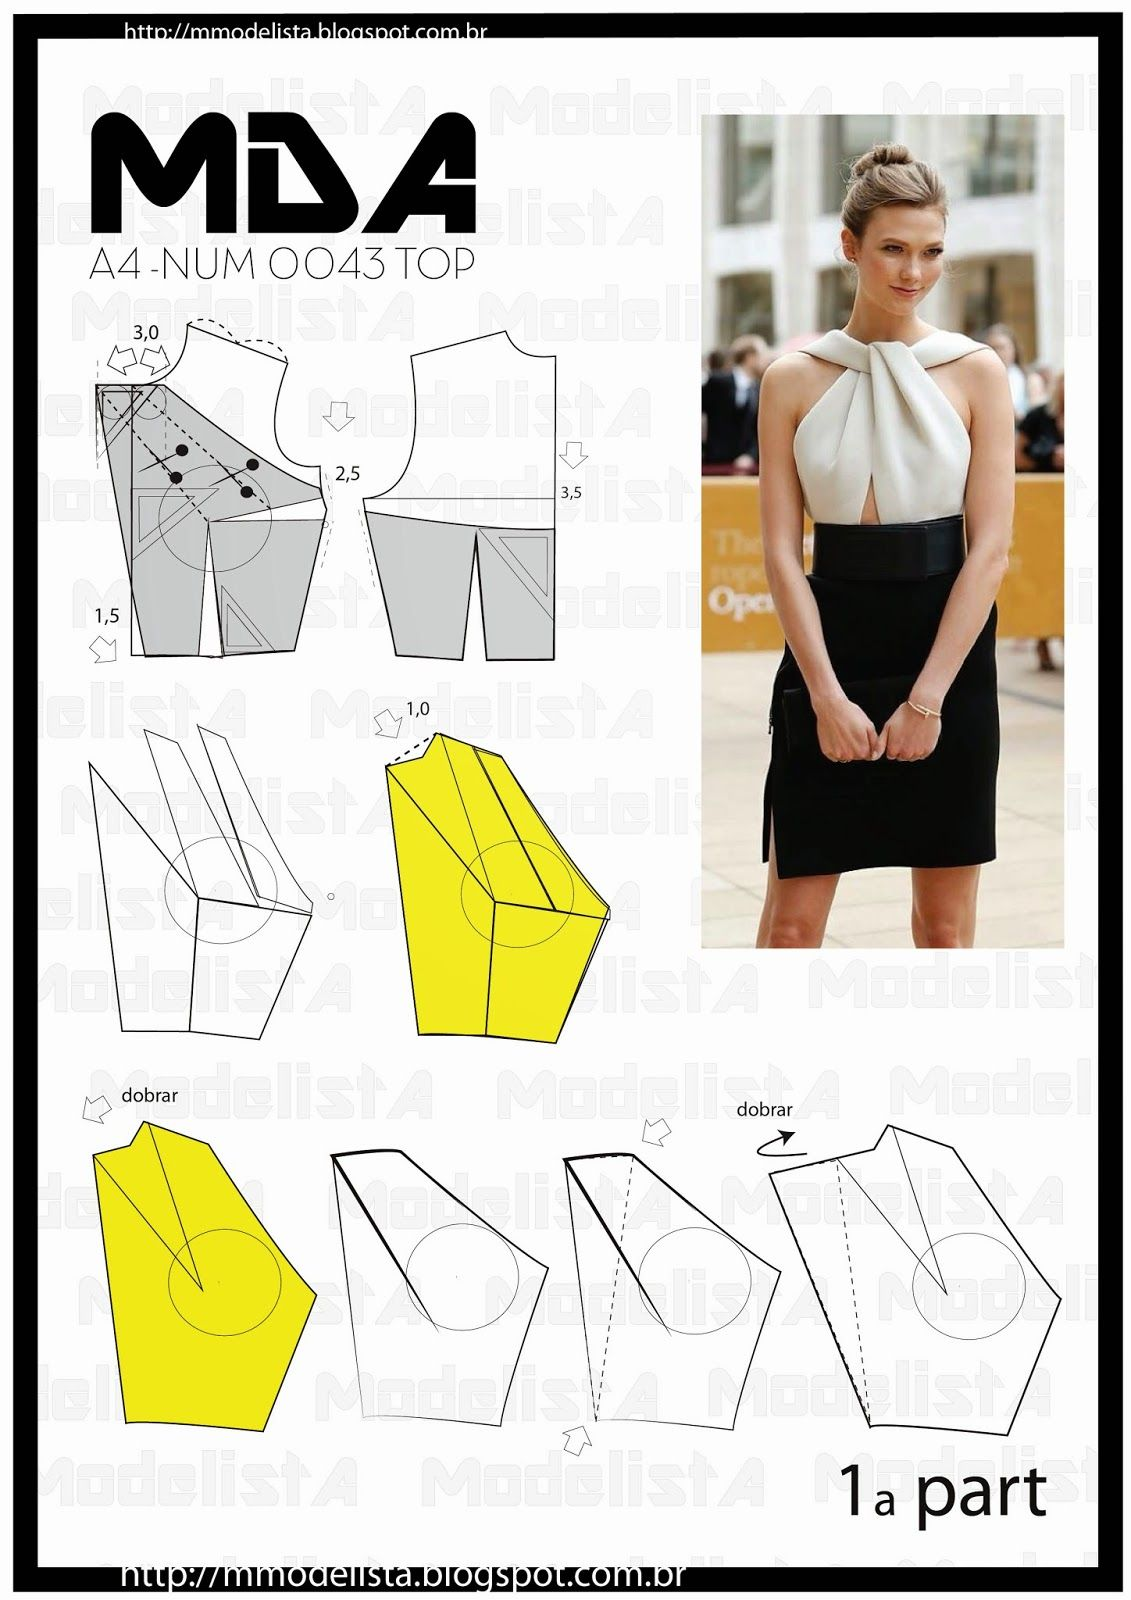 A4 NUM 0043 TOP | blouse pattern | Pinterest | Patrones, Molde y Costura